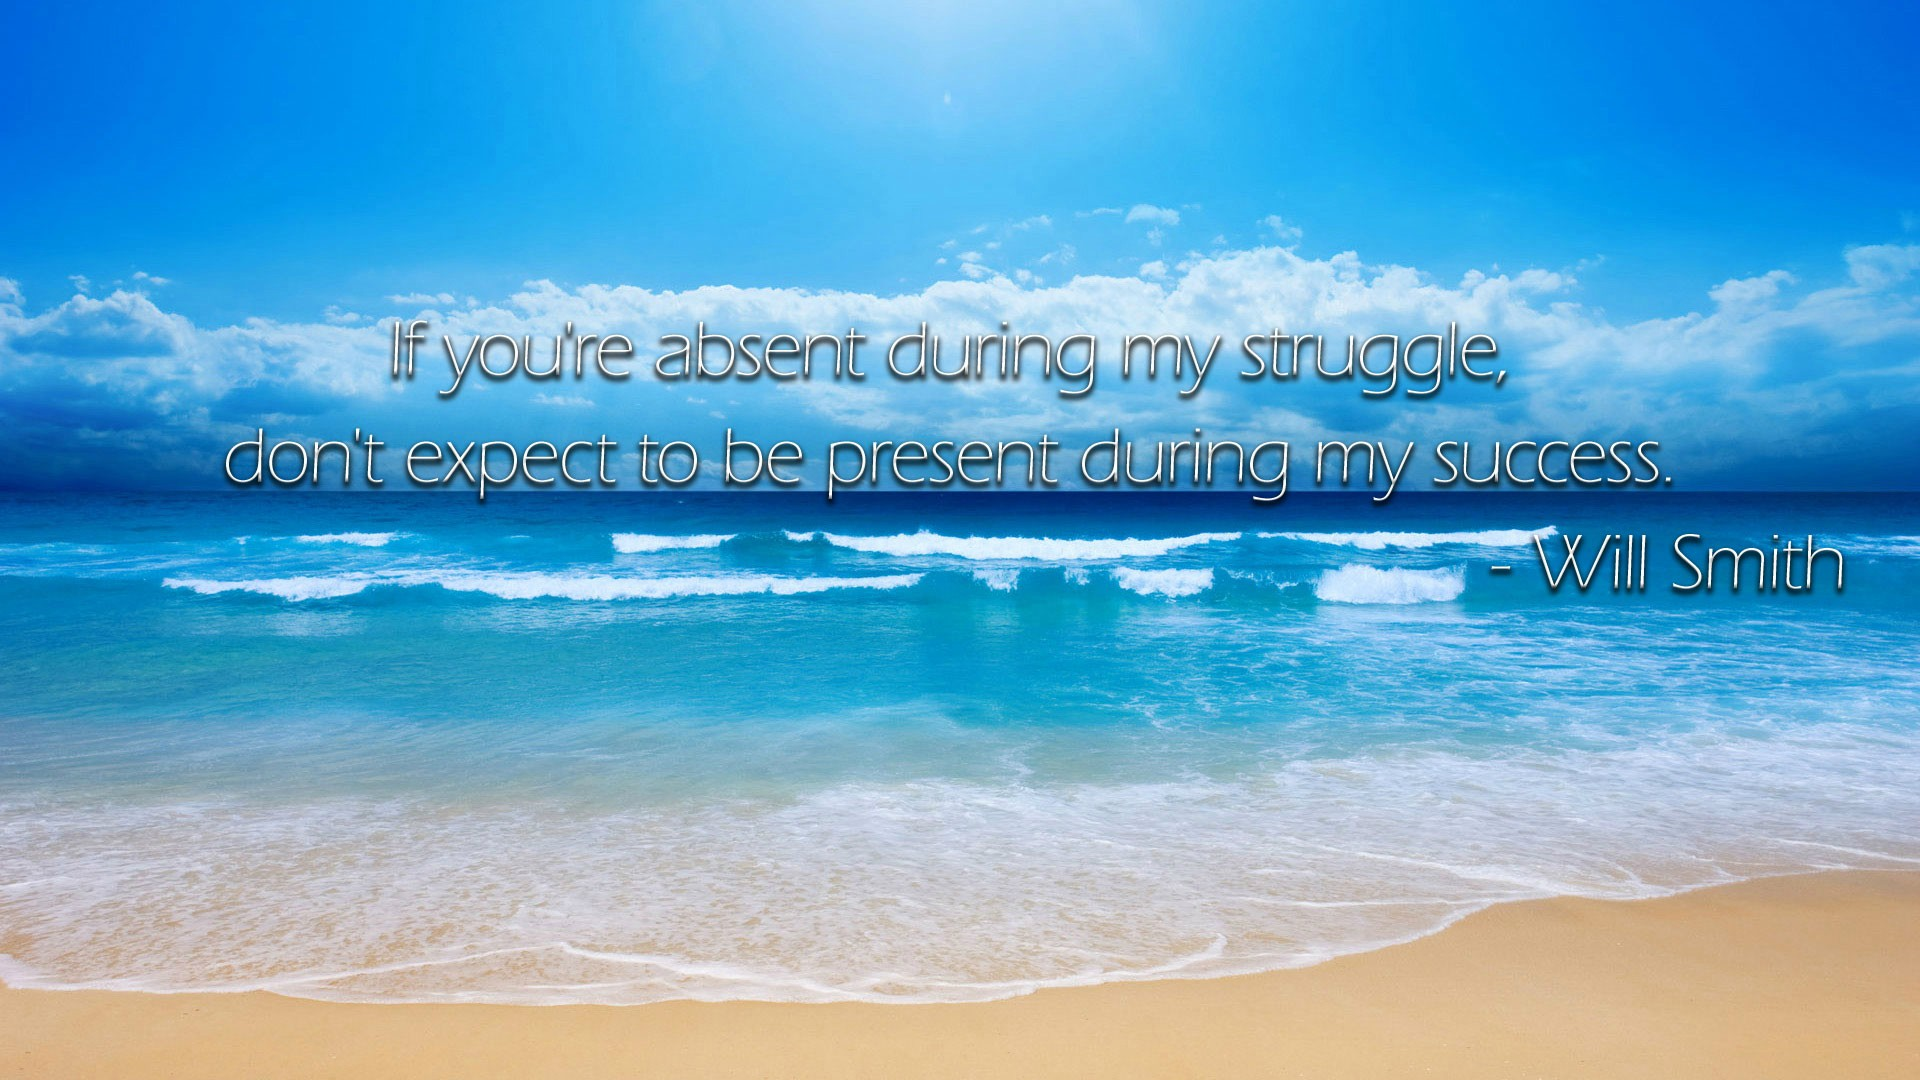 quote on beach scene 40061 Wallpaper high quality Backgrounds 1920x1080